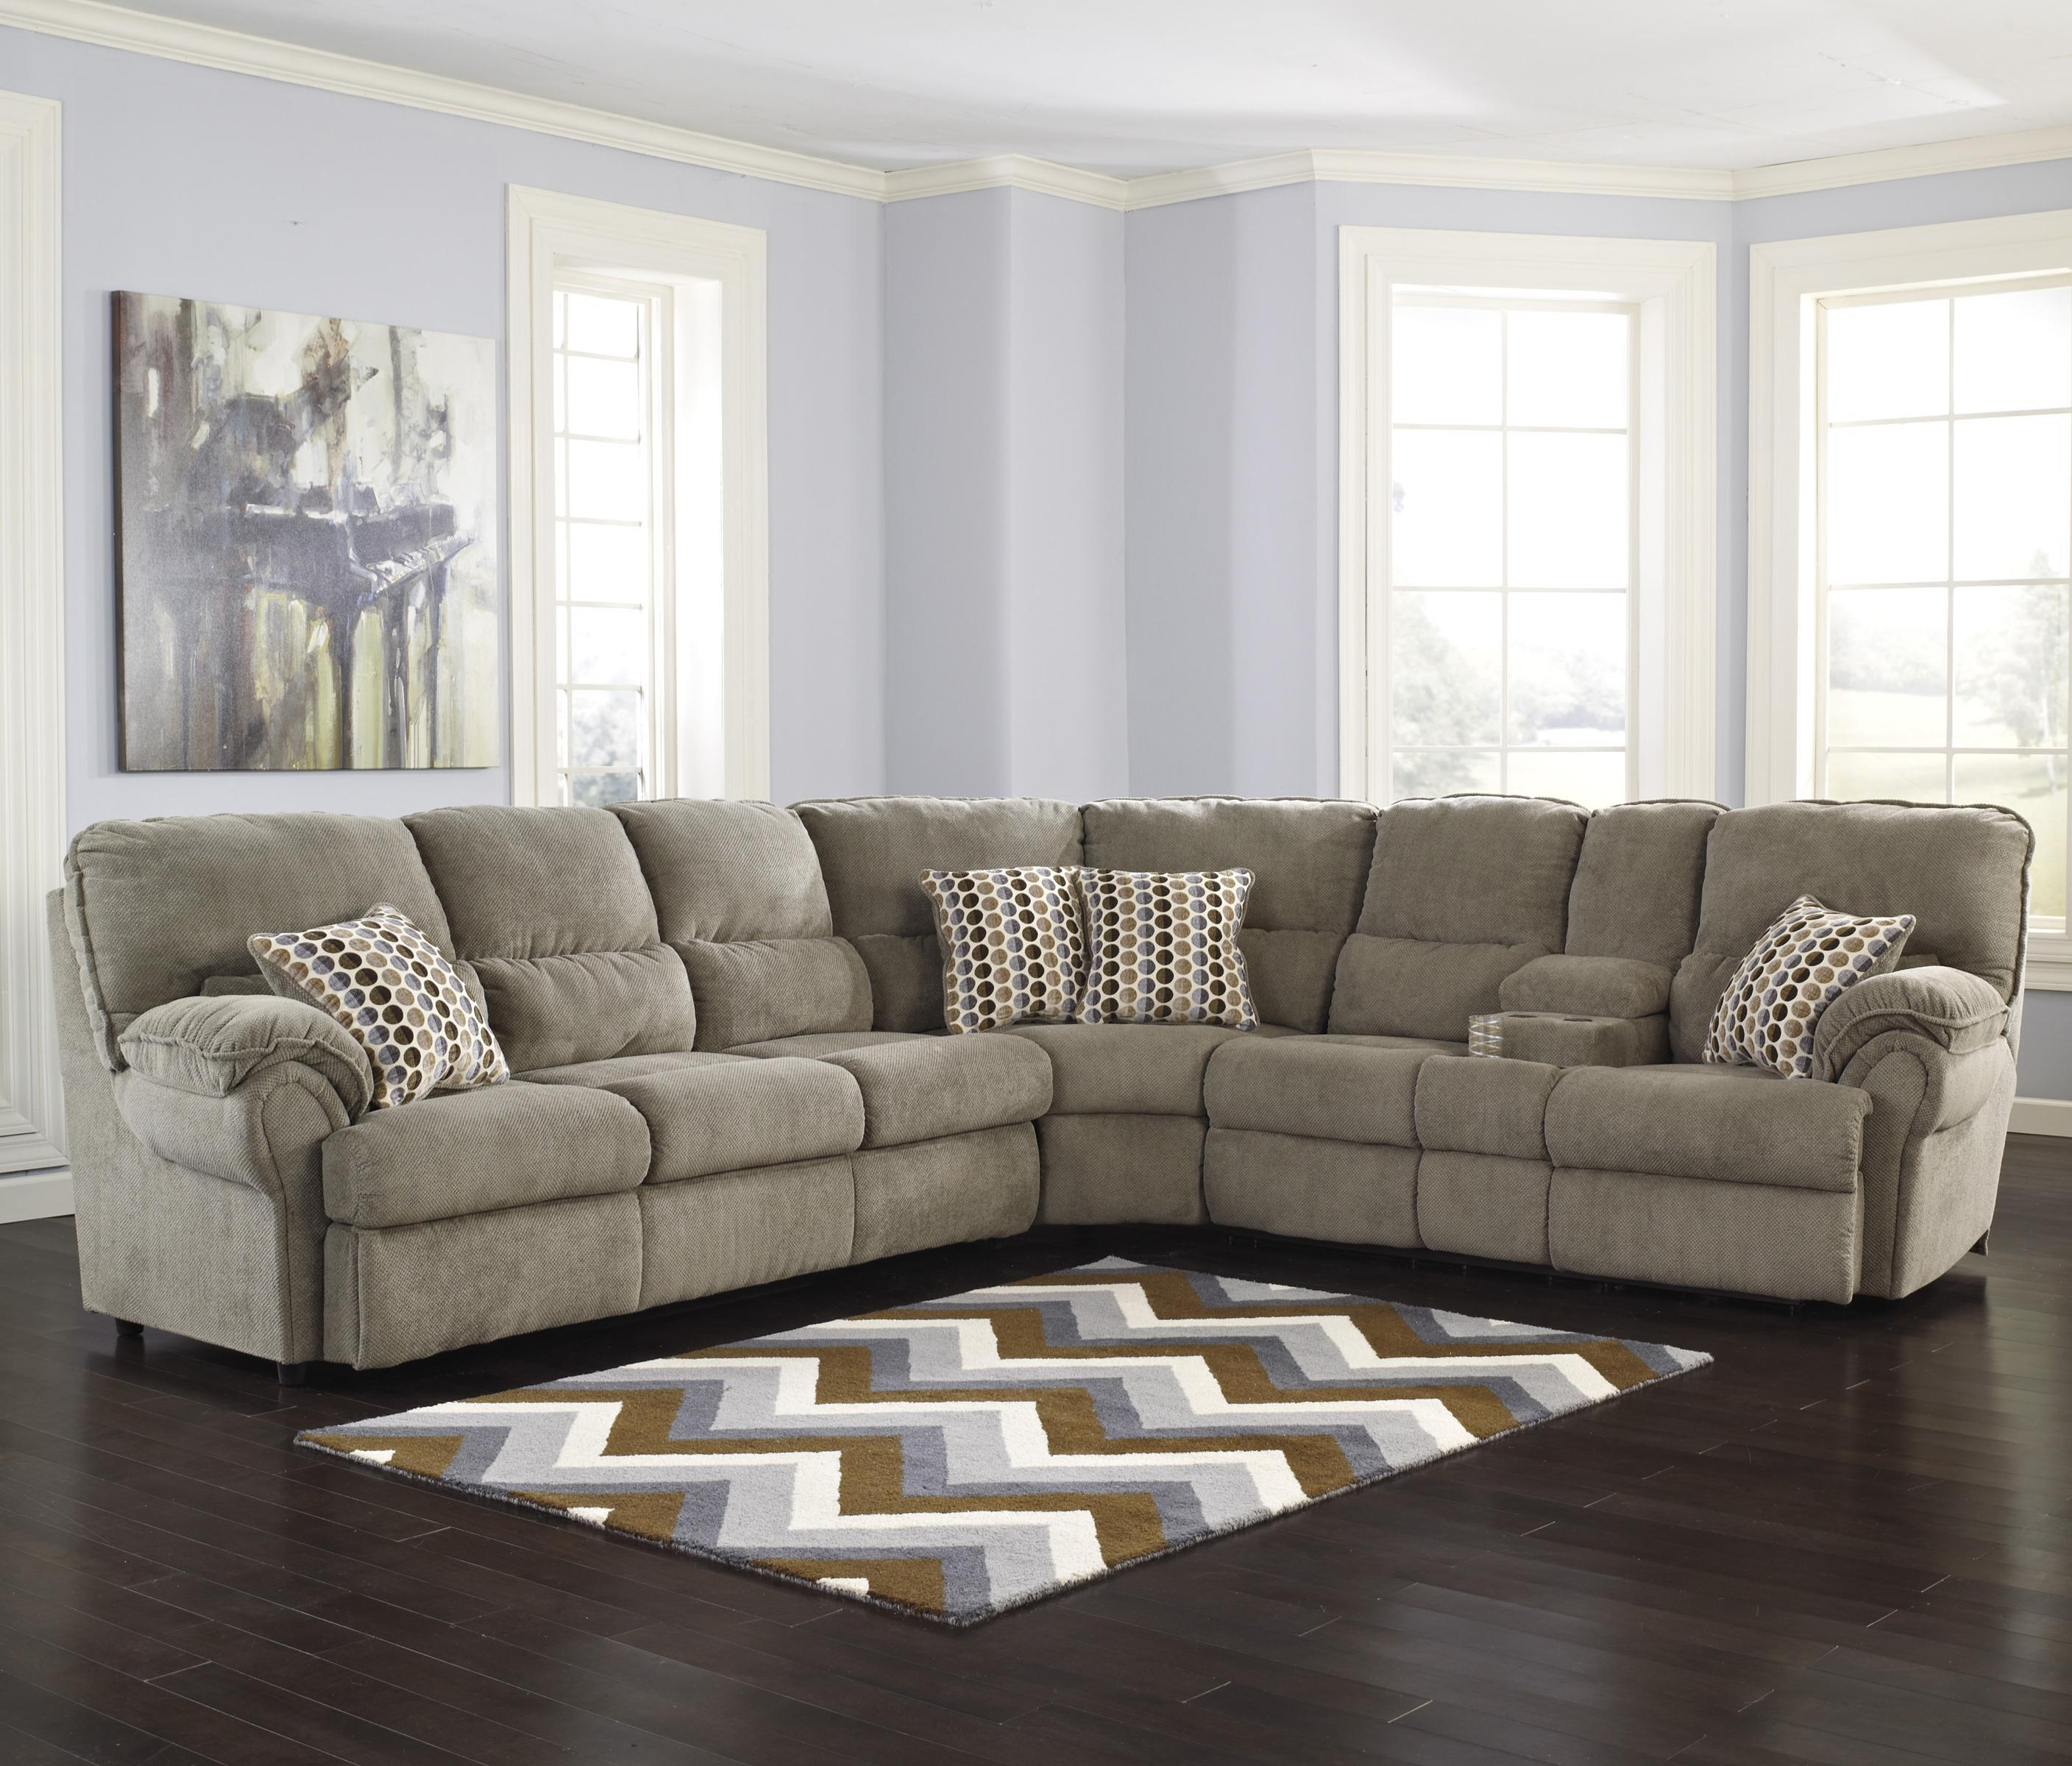 Sectional Sofa With Recliner And Queen Sleeper | Tehranmix Decoration For Sectional With Recliner And Sleeper (View 6 of 20)